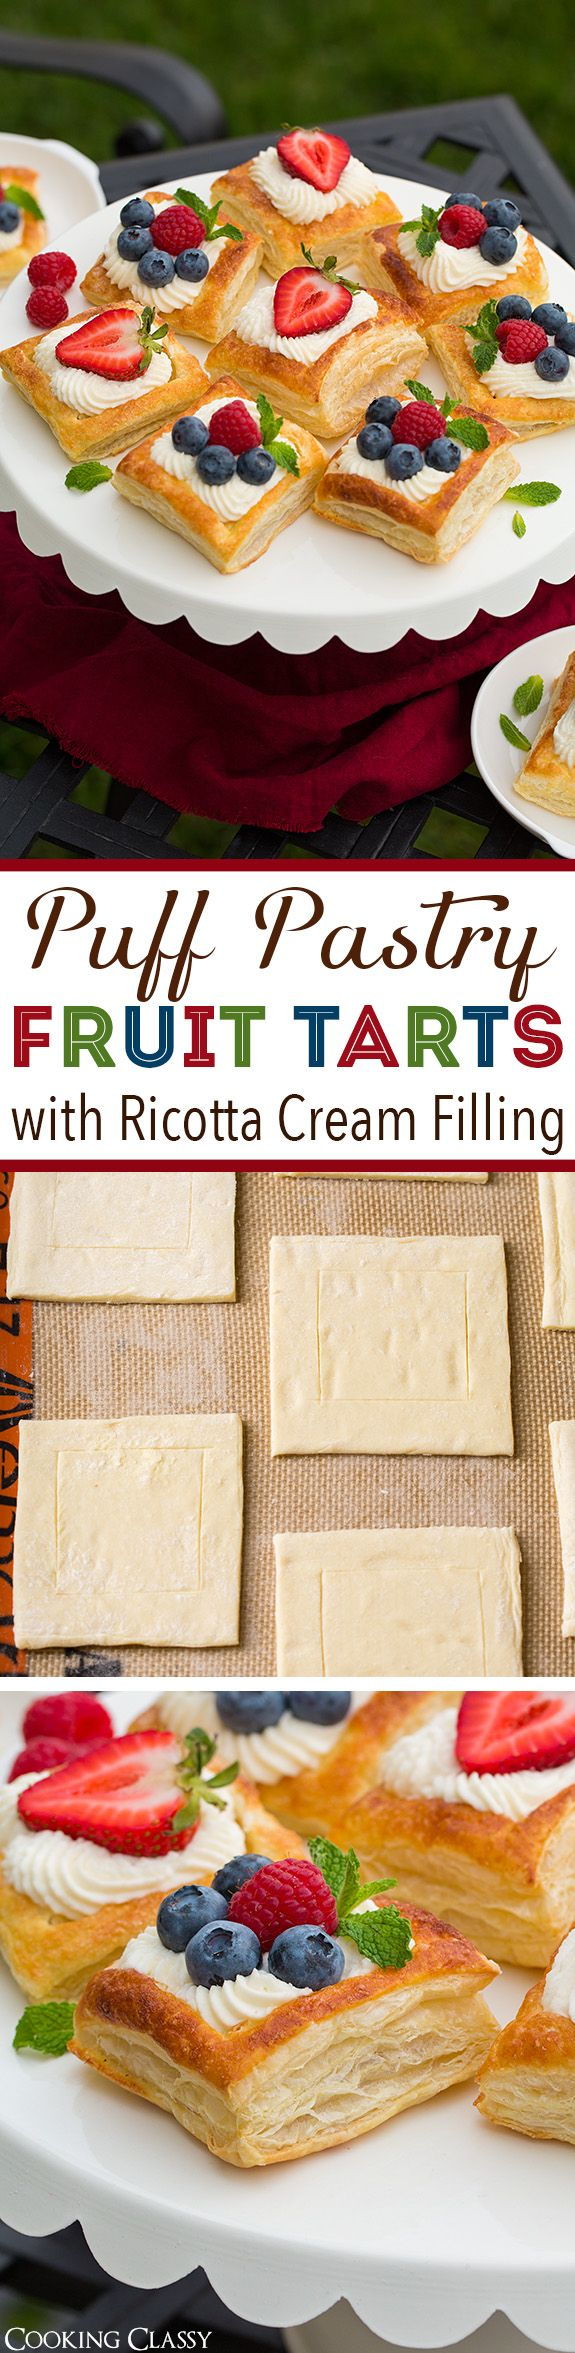 Puff Pastry Fruit Tarts with Ricotta Cream Filling - one of the BEST summer desserts! Oh so flaky pastry, rich creamy ricotta filling, and sweet fresh fruit. Can't wait to make them again!!